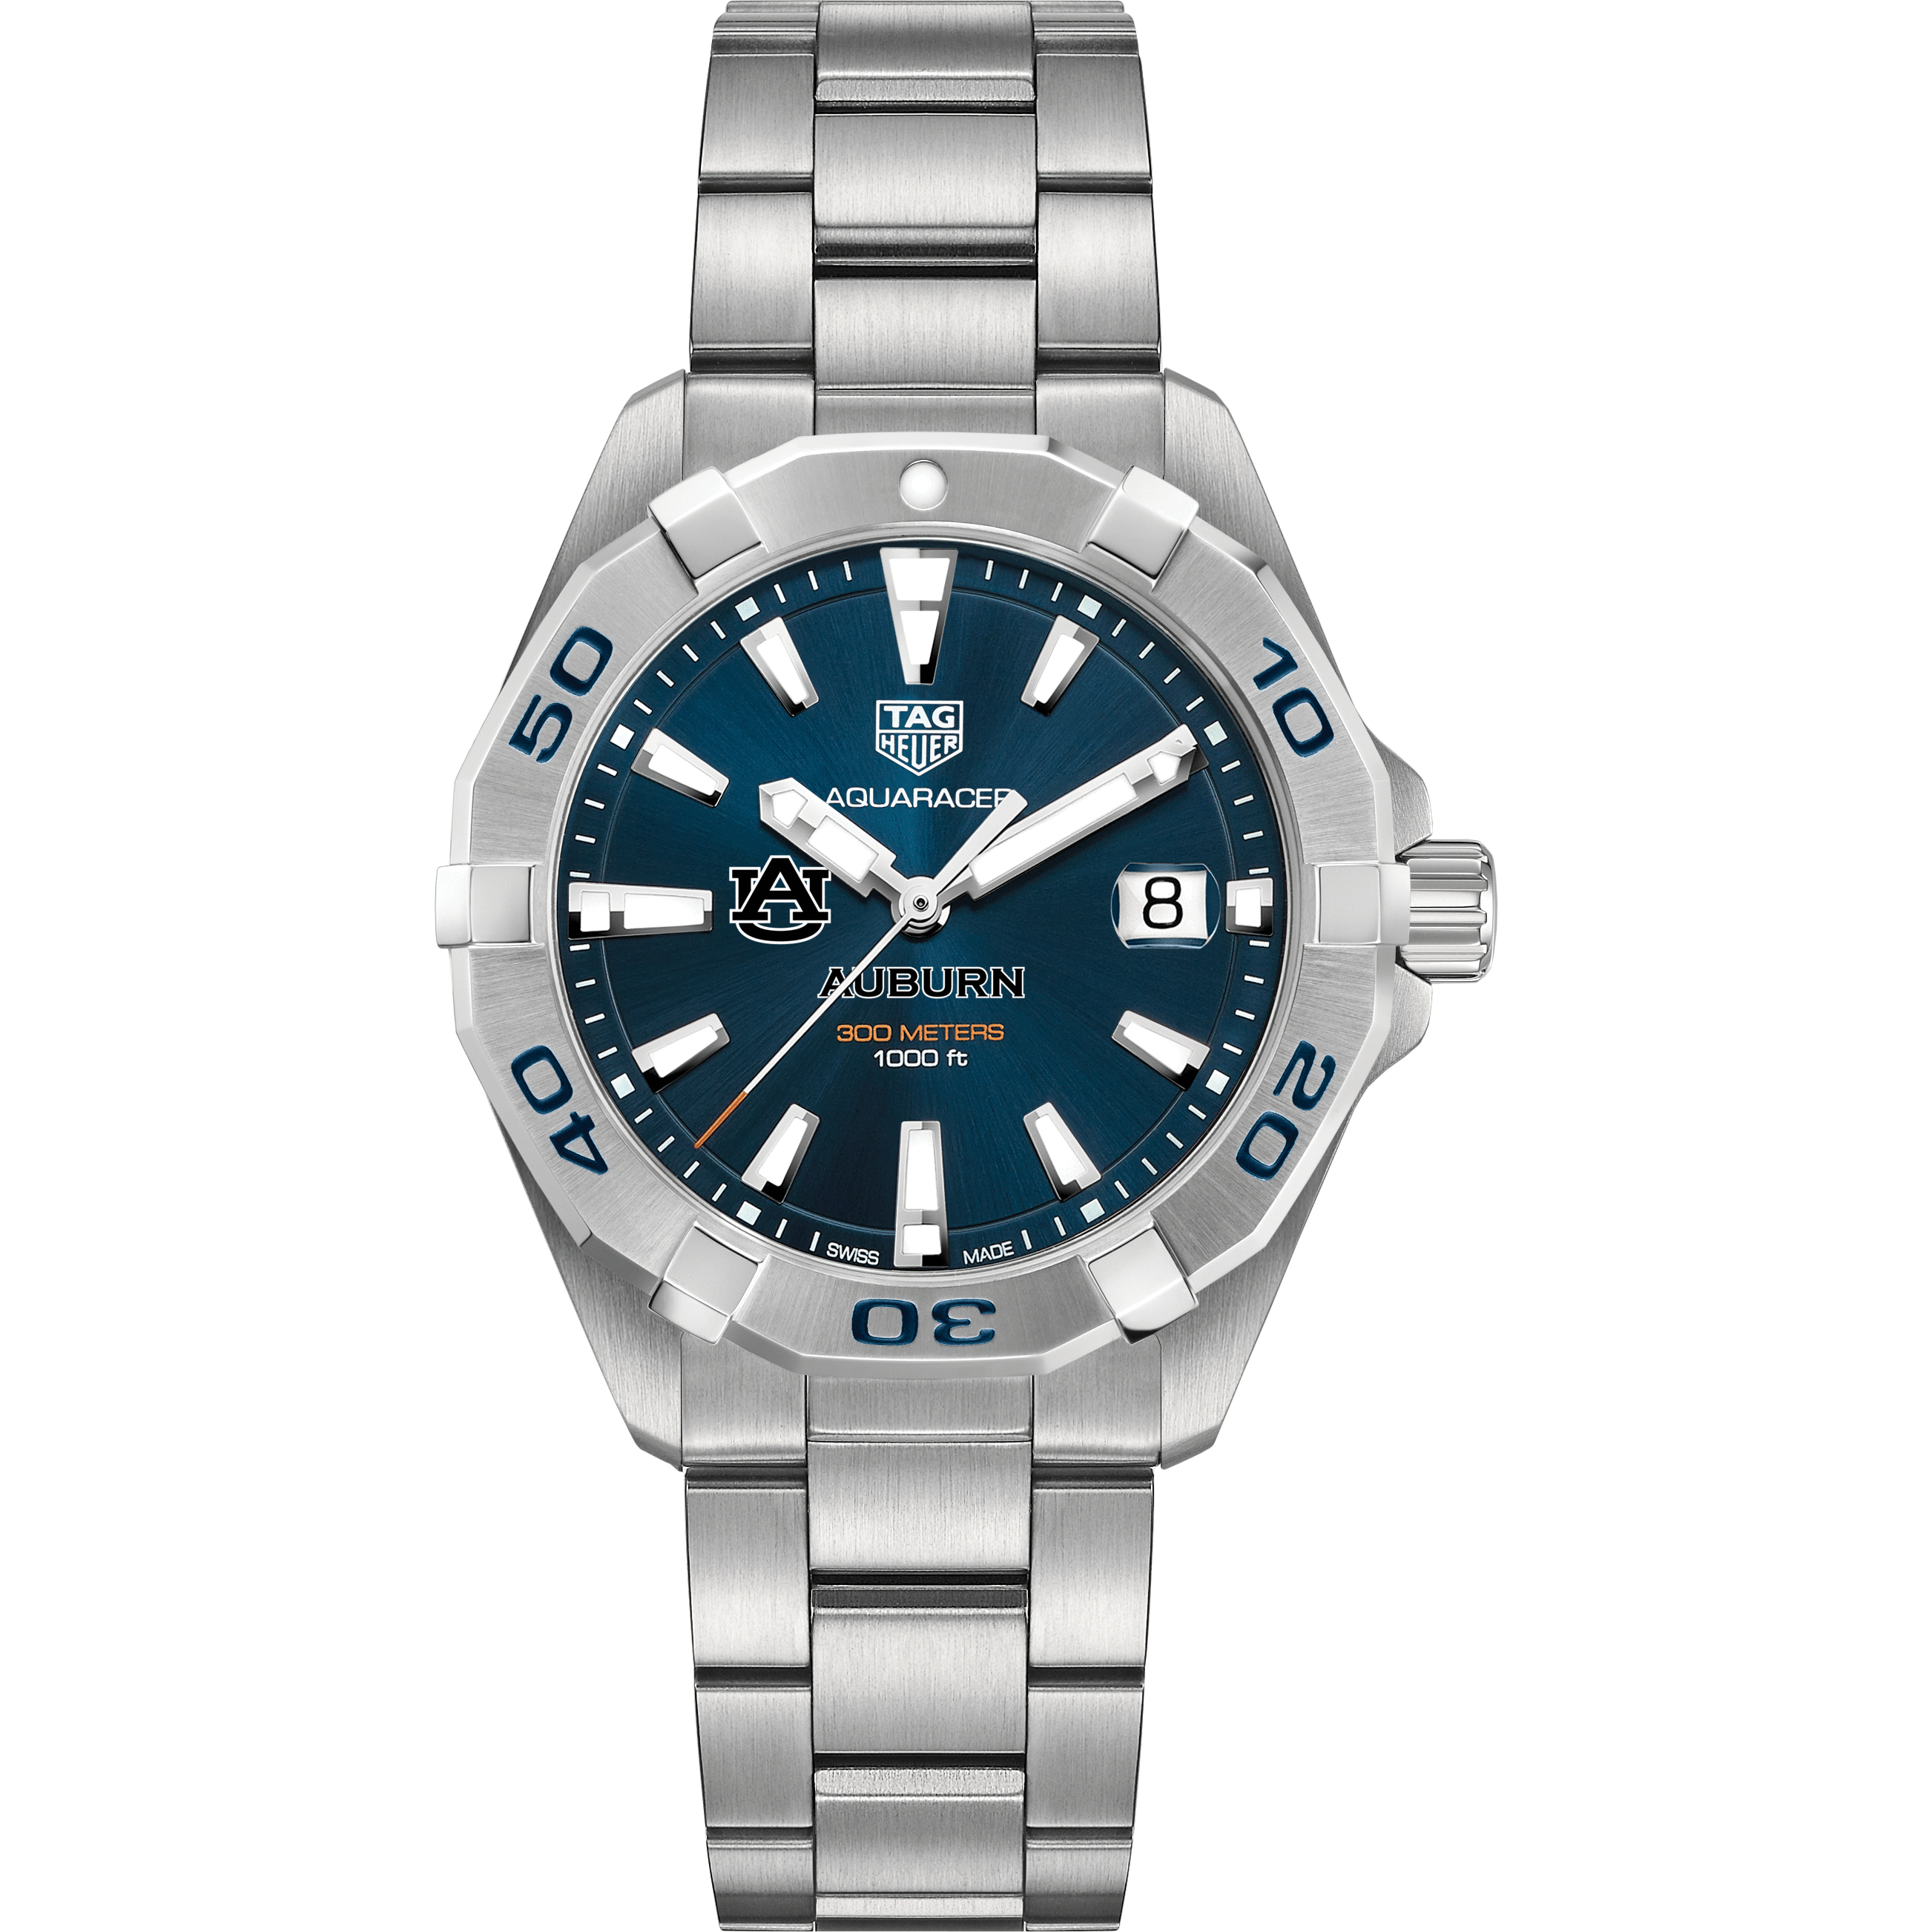 Auburn Men's TAG Heuer Steel Aquaracer with Blue Dial